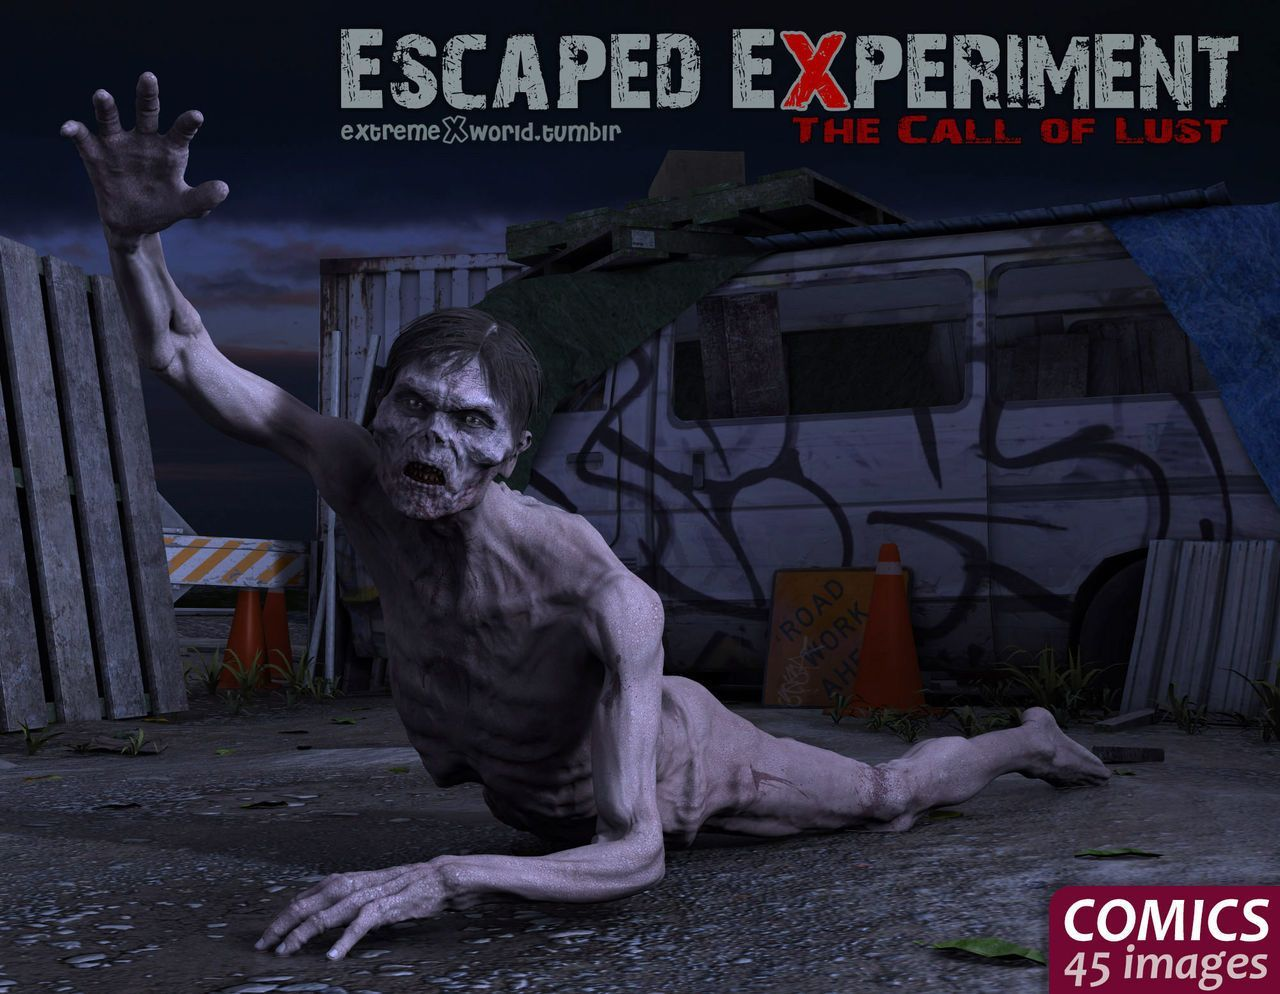 Escaped experiment - The call of lust